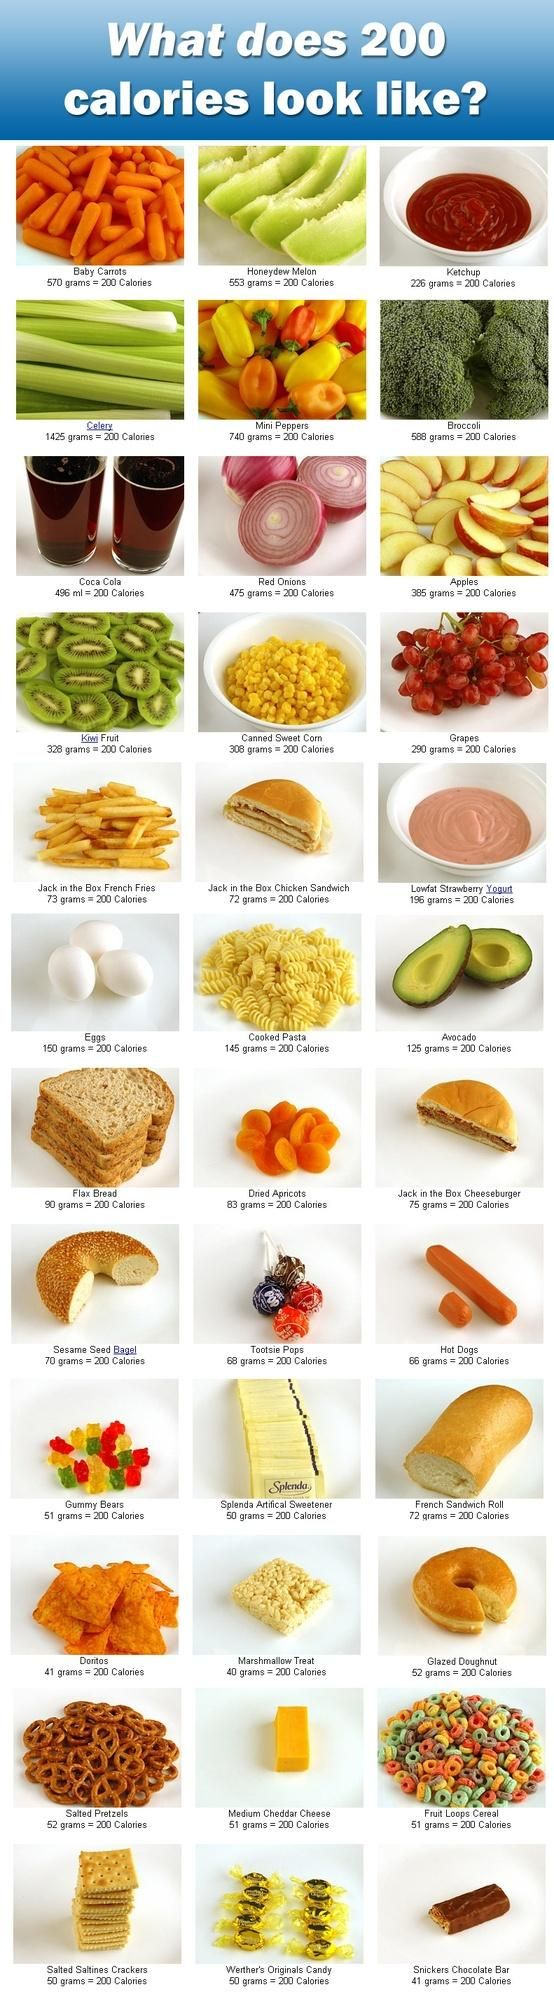 What does 200 calories look like? It Flat Out Works!!! Order your supply: http://skinny_1719268.eatlessfeelfull.com/ OR Join the 90 Day Challenge with me http://skinny_1719268.sbc90.com/ Or earn great money http://skinny_1719268.onebigpowerline.com/